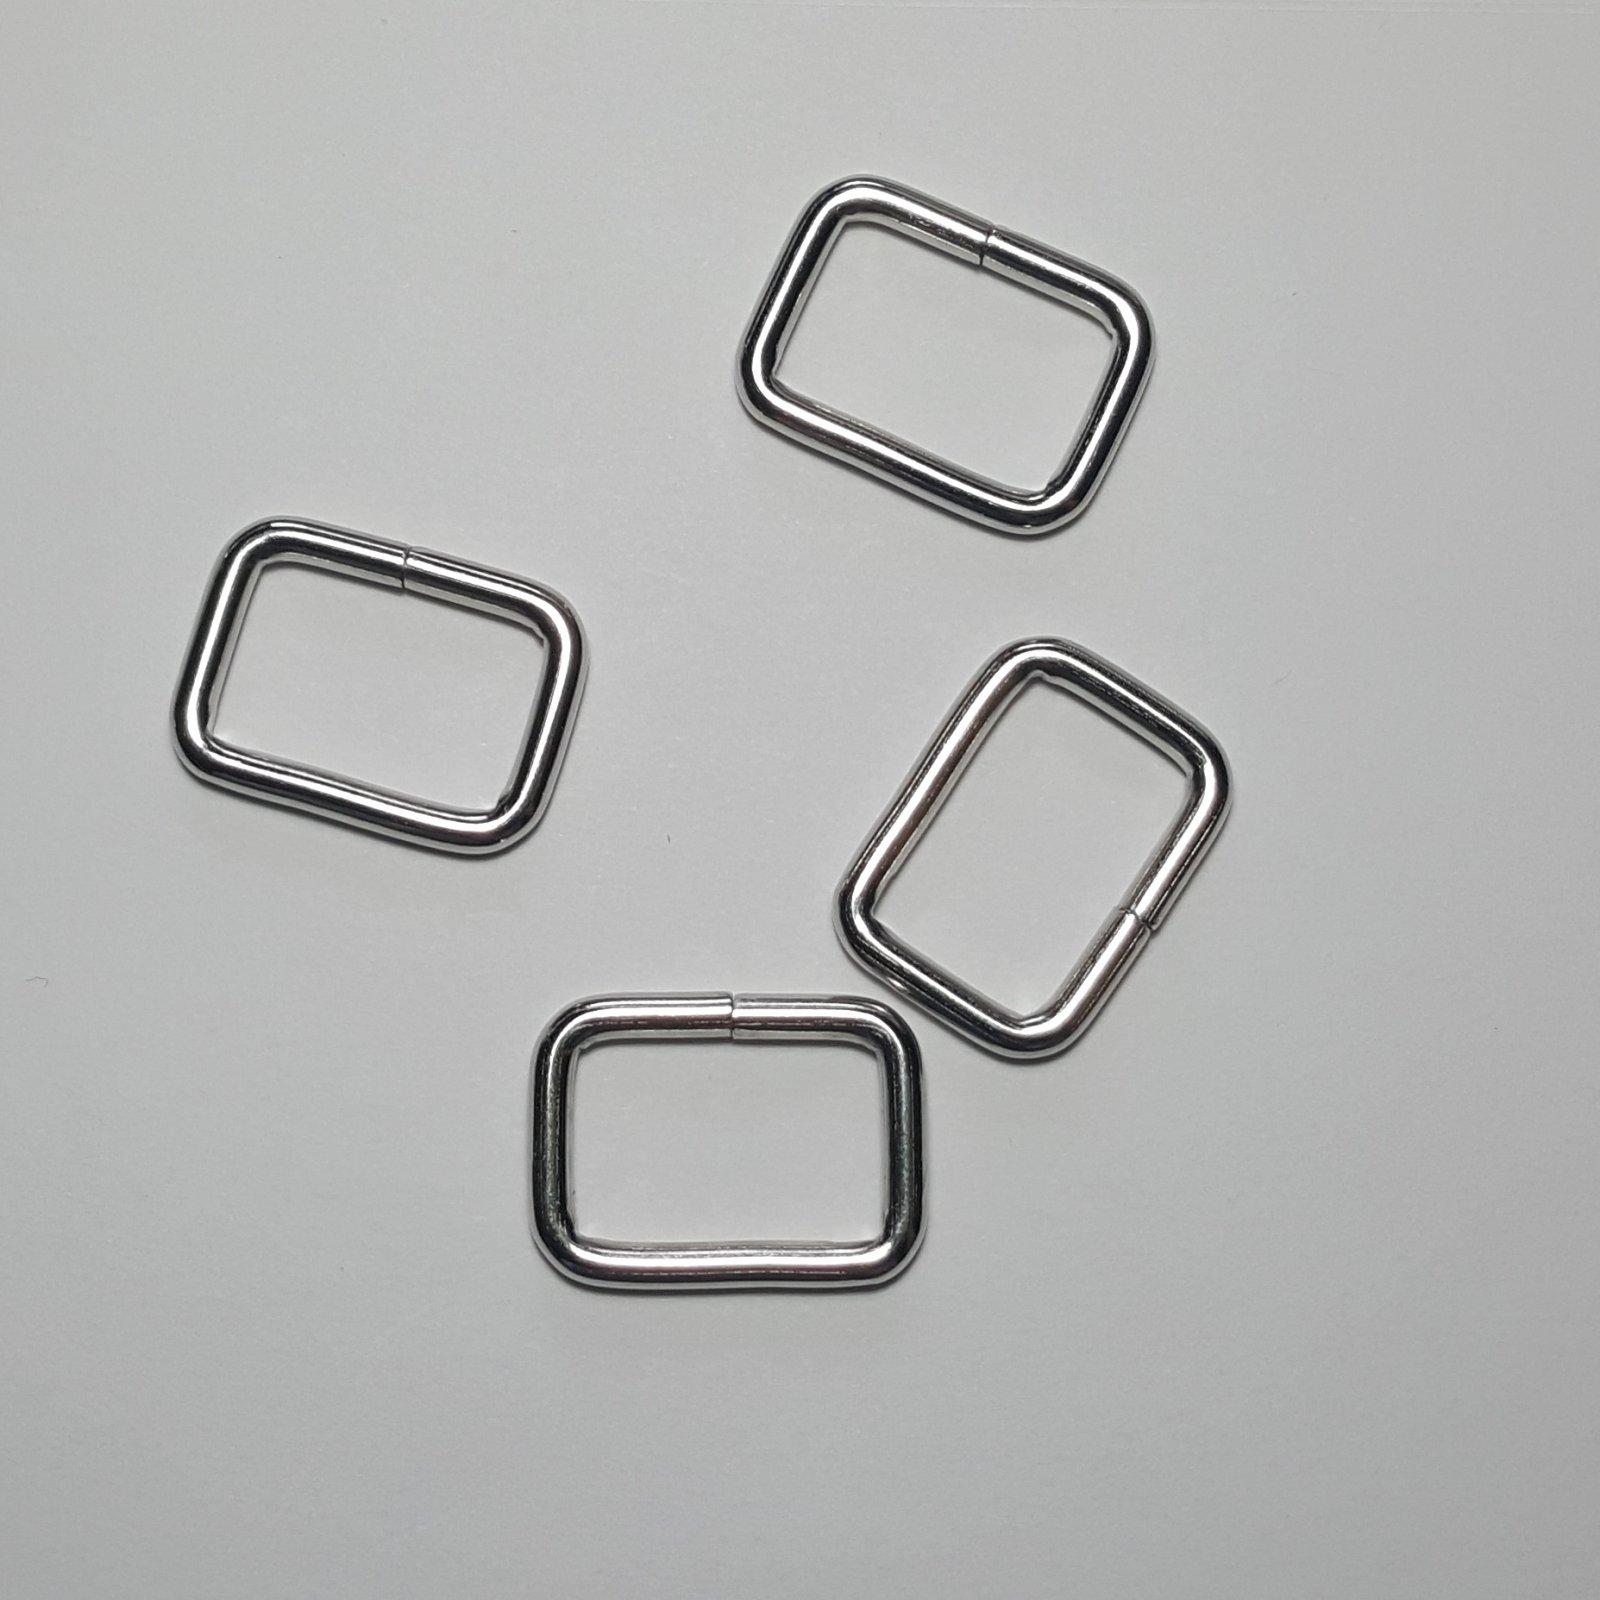 3/4- 4 Rectangle Rings - Nickel